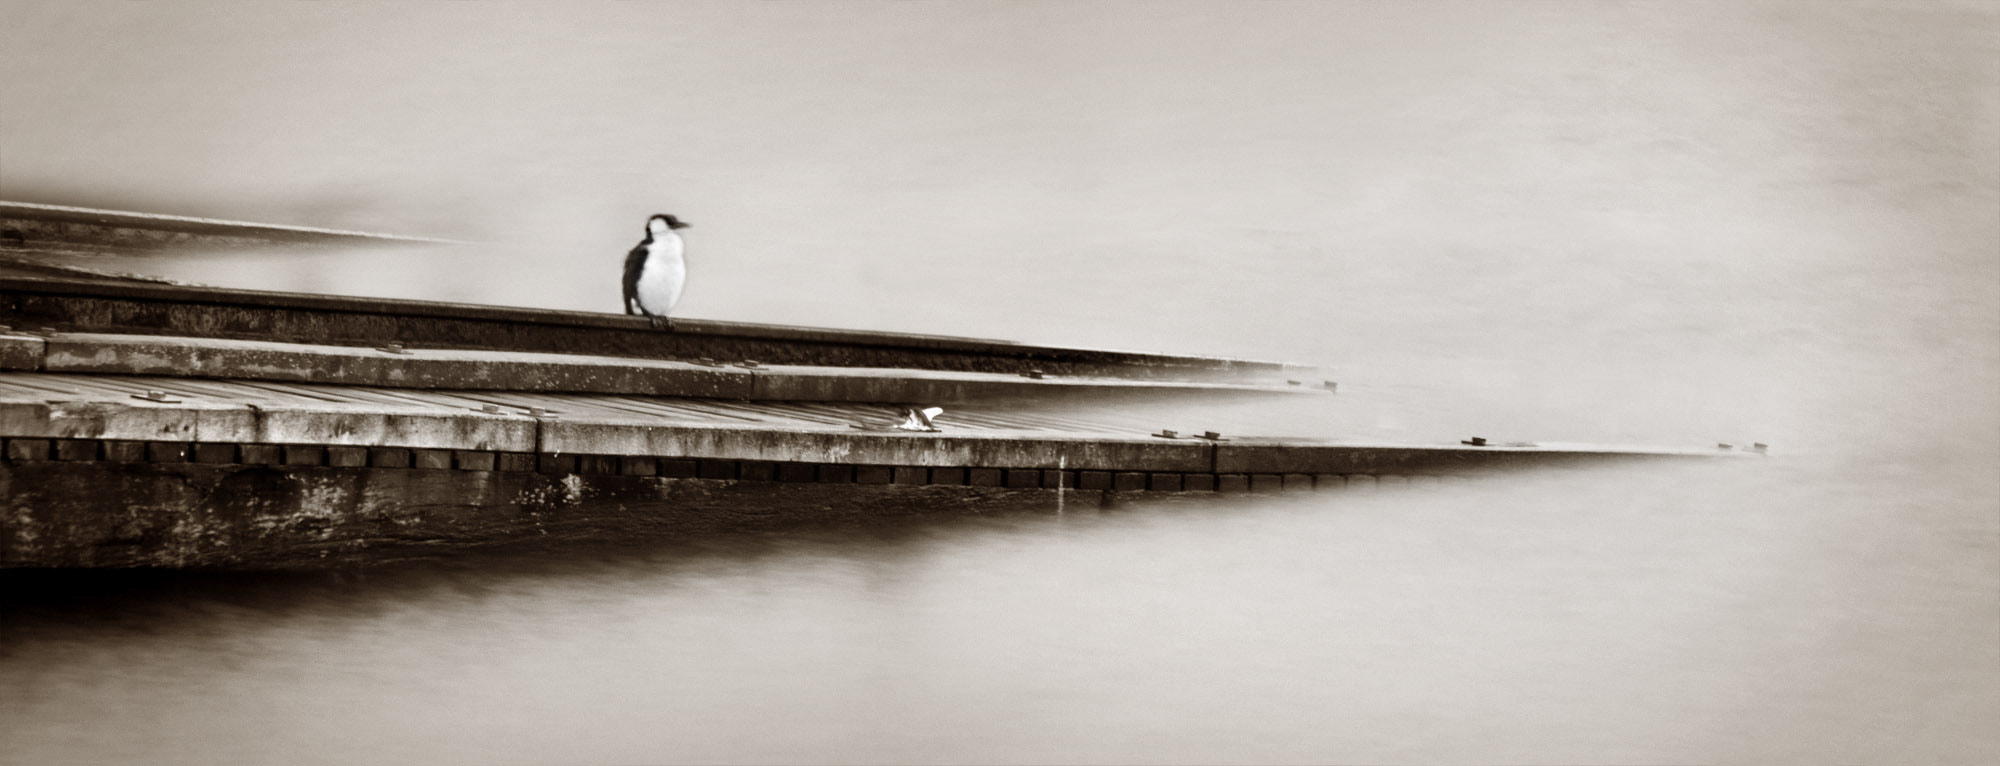 Photograph boat launch by Nathan Oxley on 500px